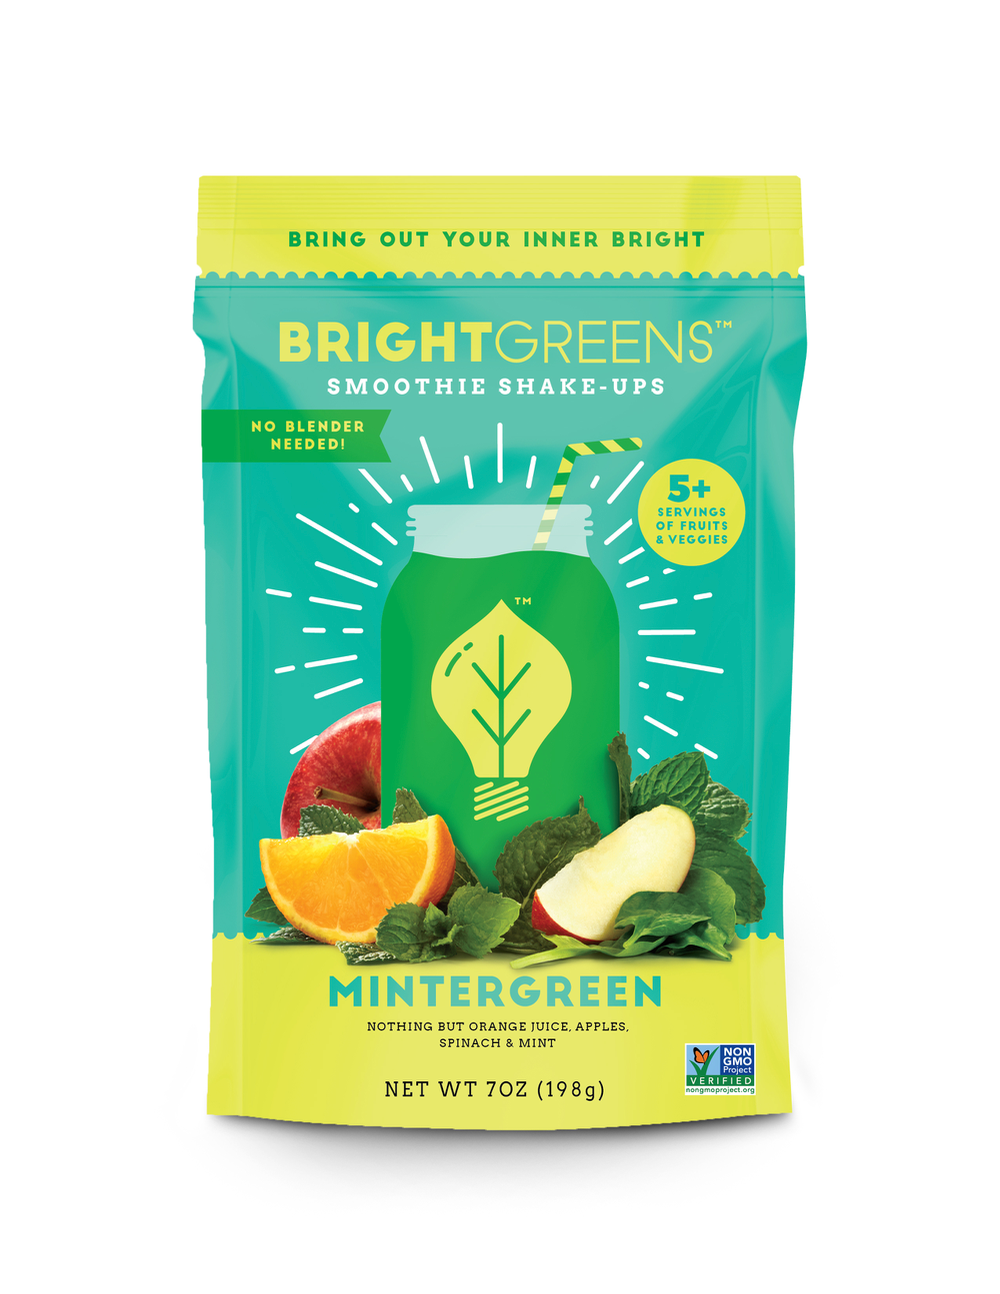 Bright Greens Smoothie Shake Ups Mintergreen